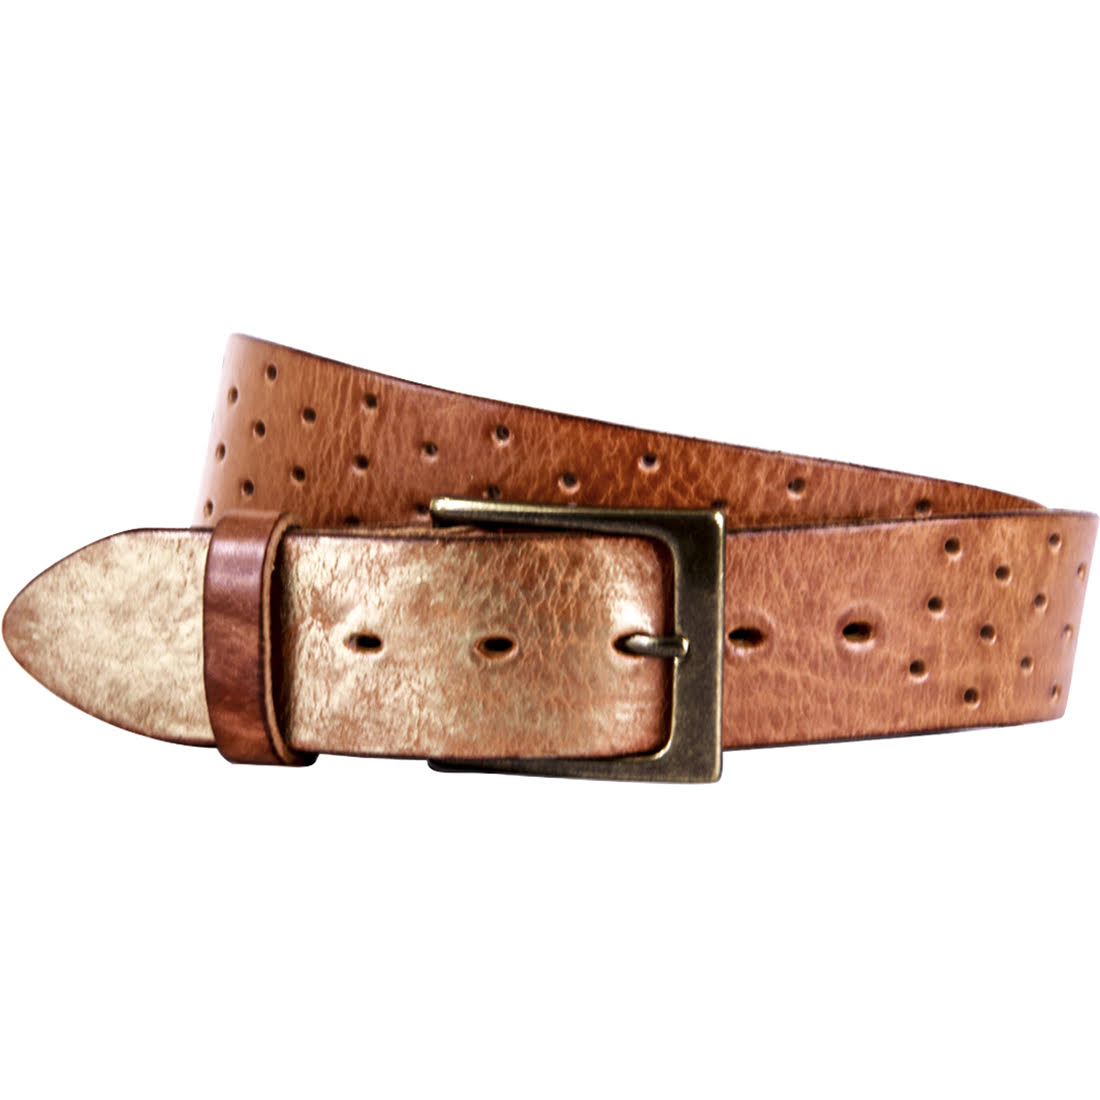 Curved Handmade Leather Belts, Perforata Cognac